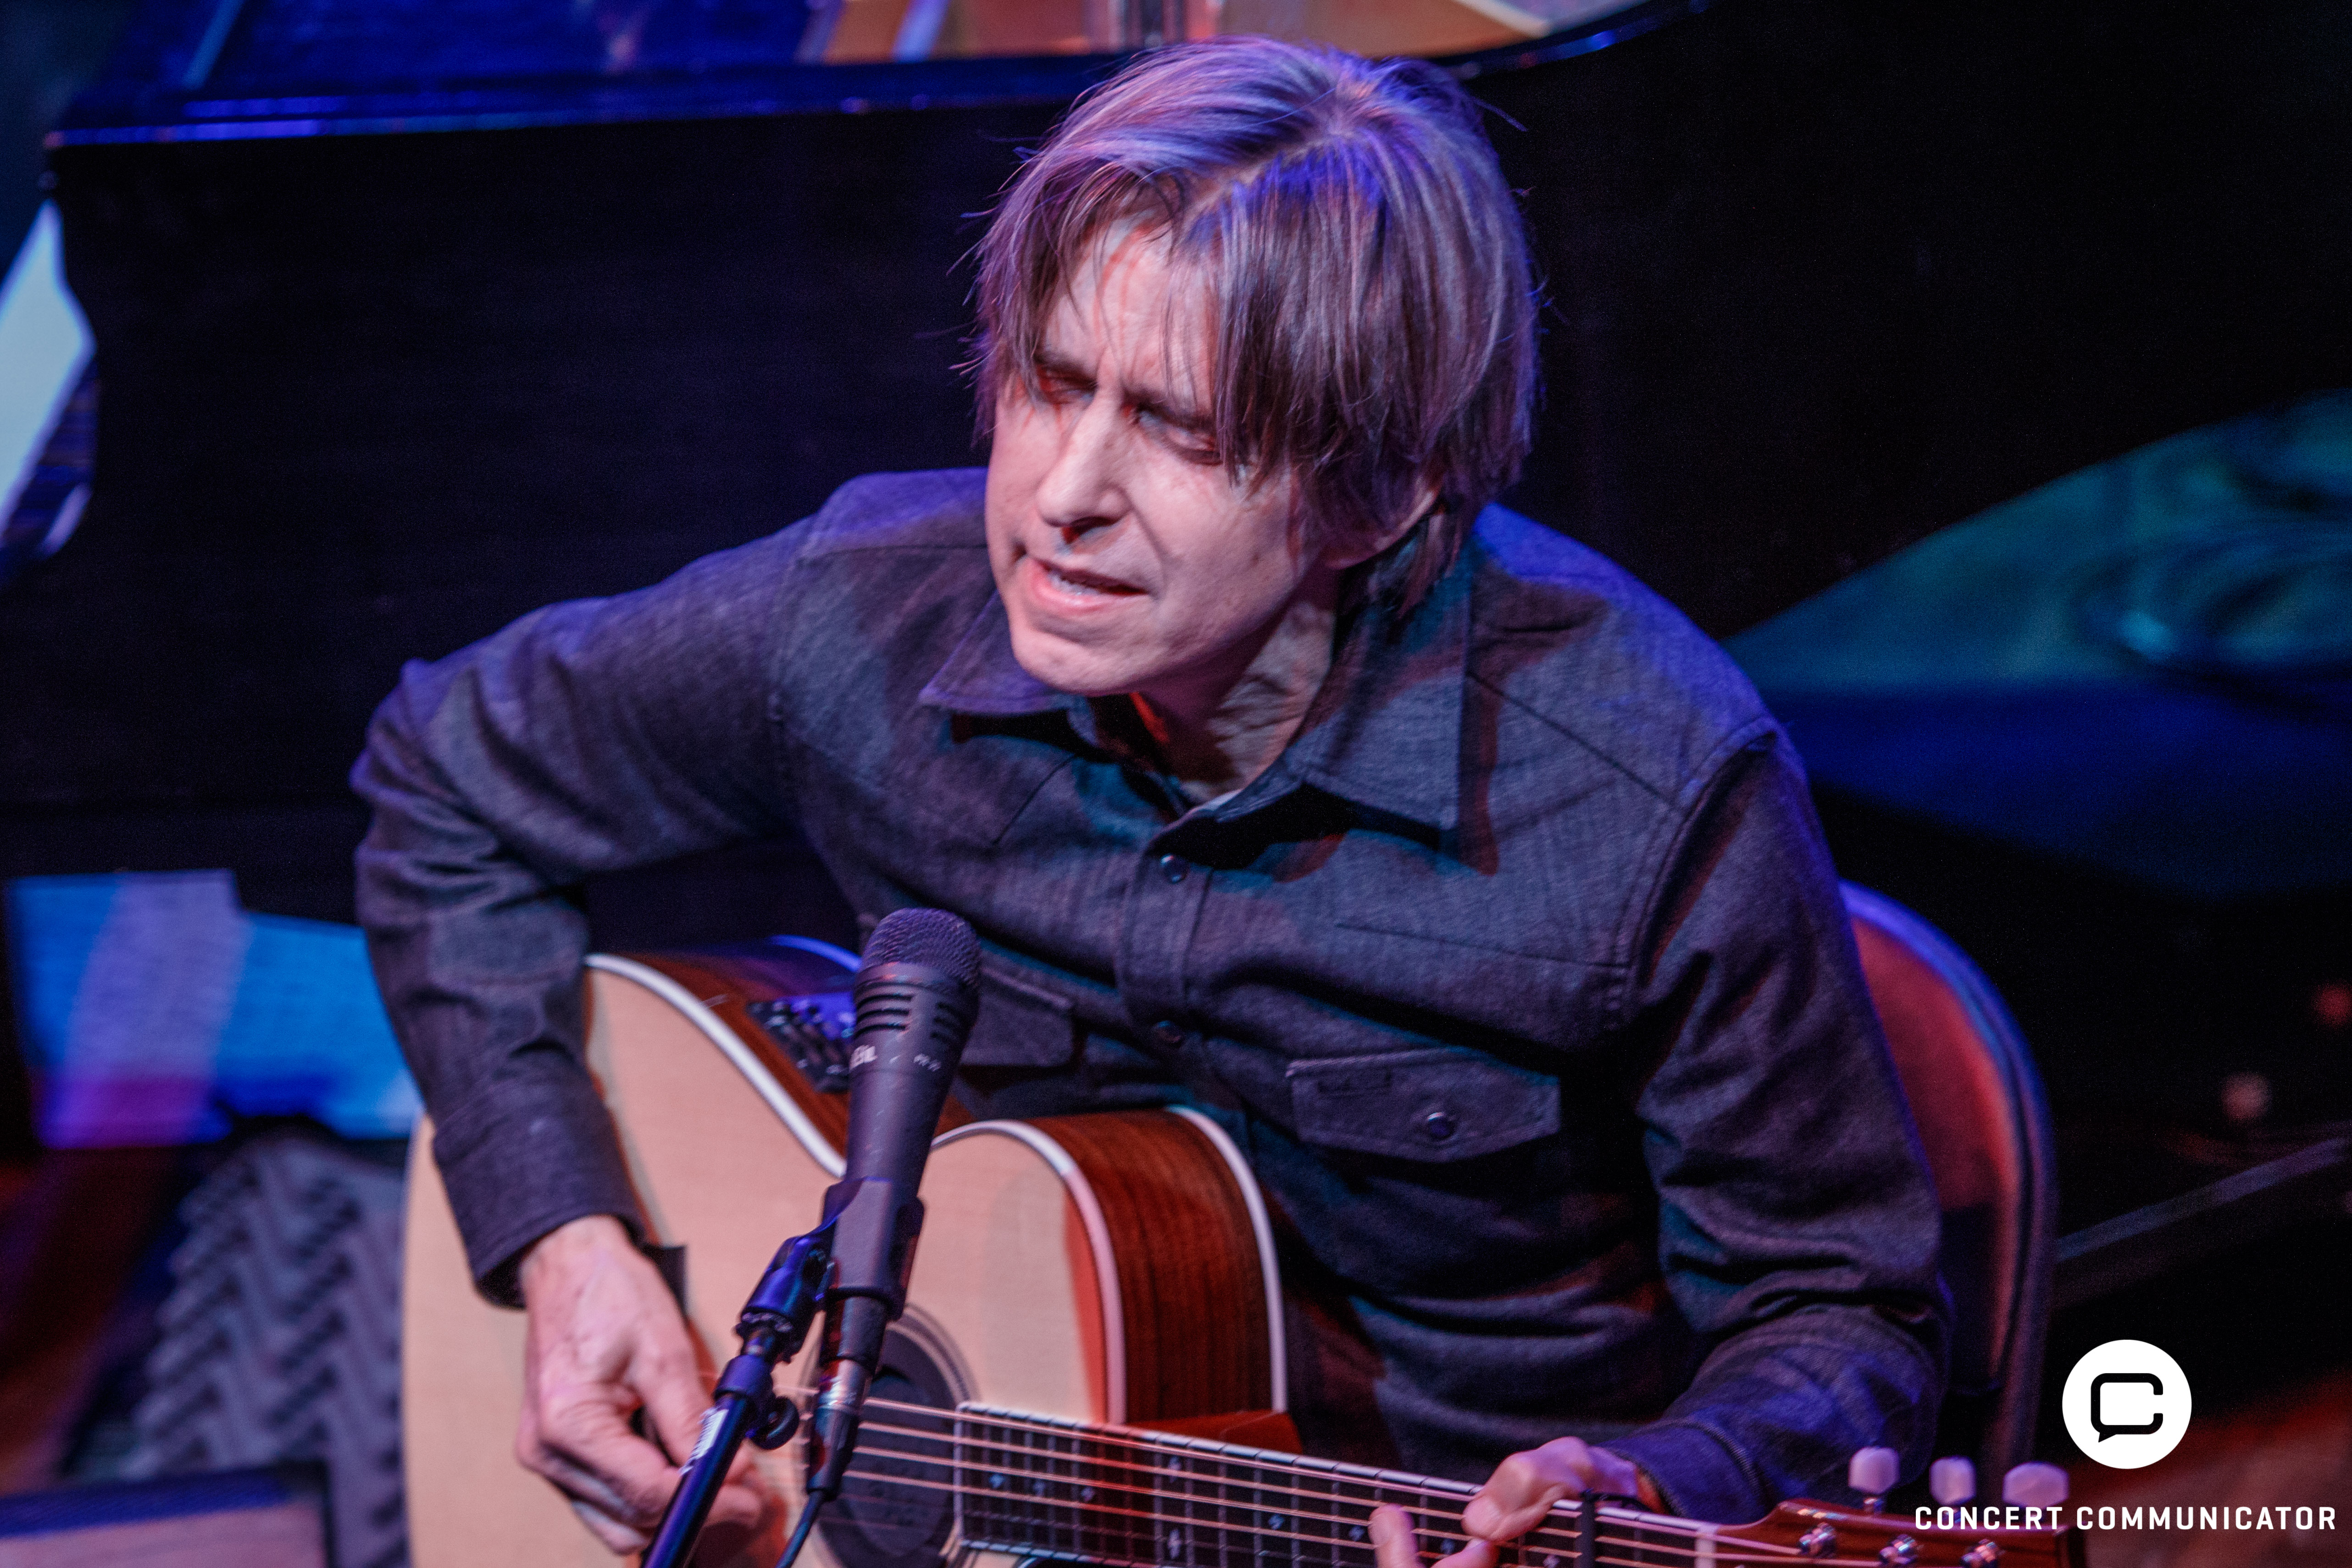 Eric Johnson at the Dakota Jazz Club